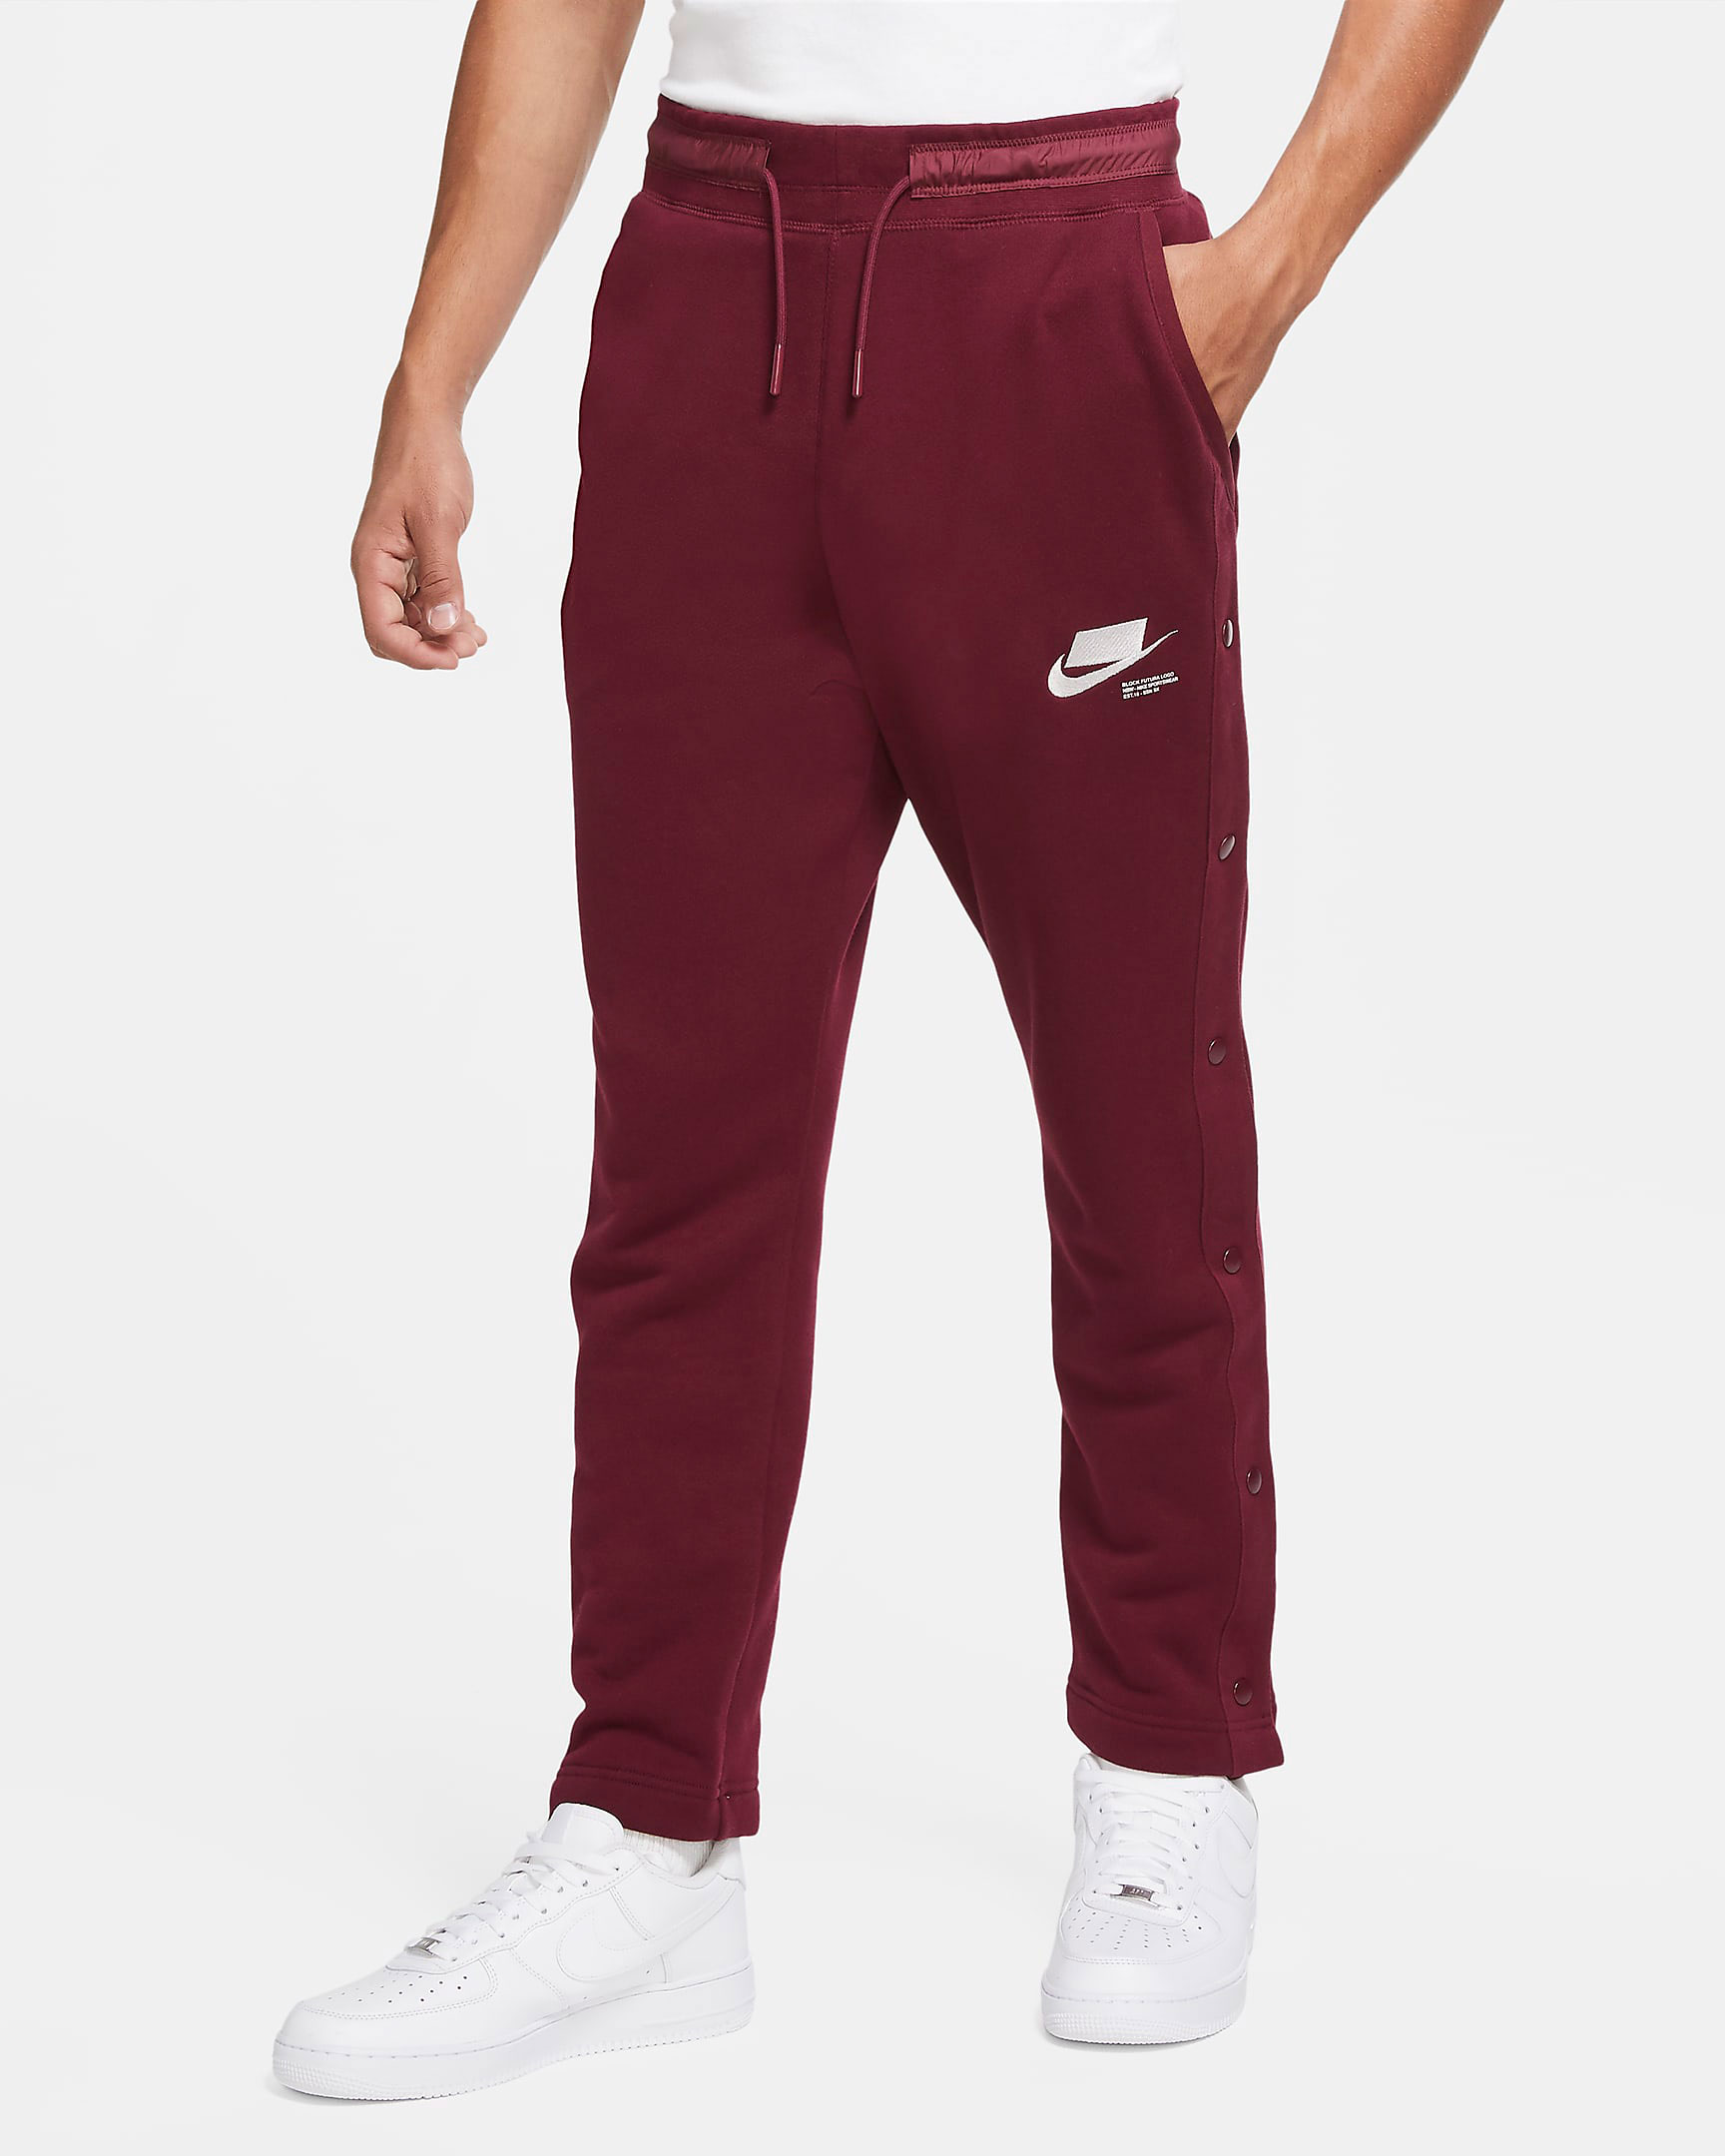 nike-sportswear-pants-beetroot-bordeaux-1